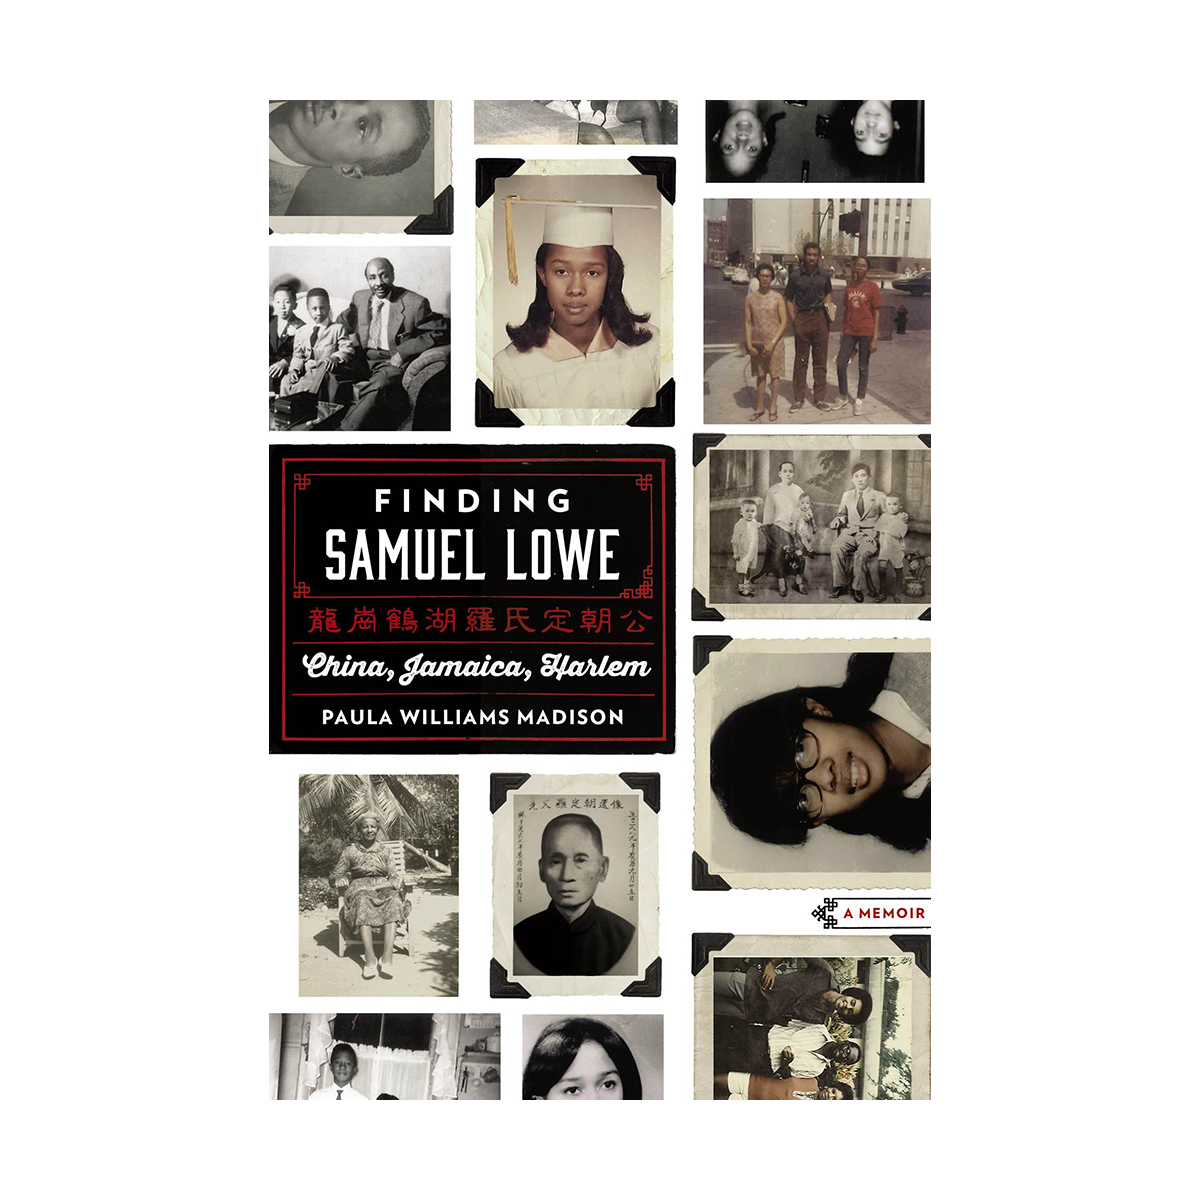 L.A. Times Book Club: Finding Samuel Lowe by Paula Williams Madison